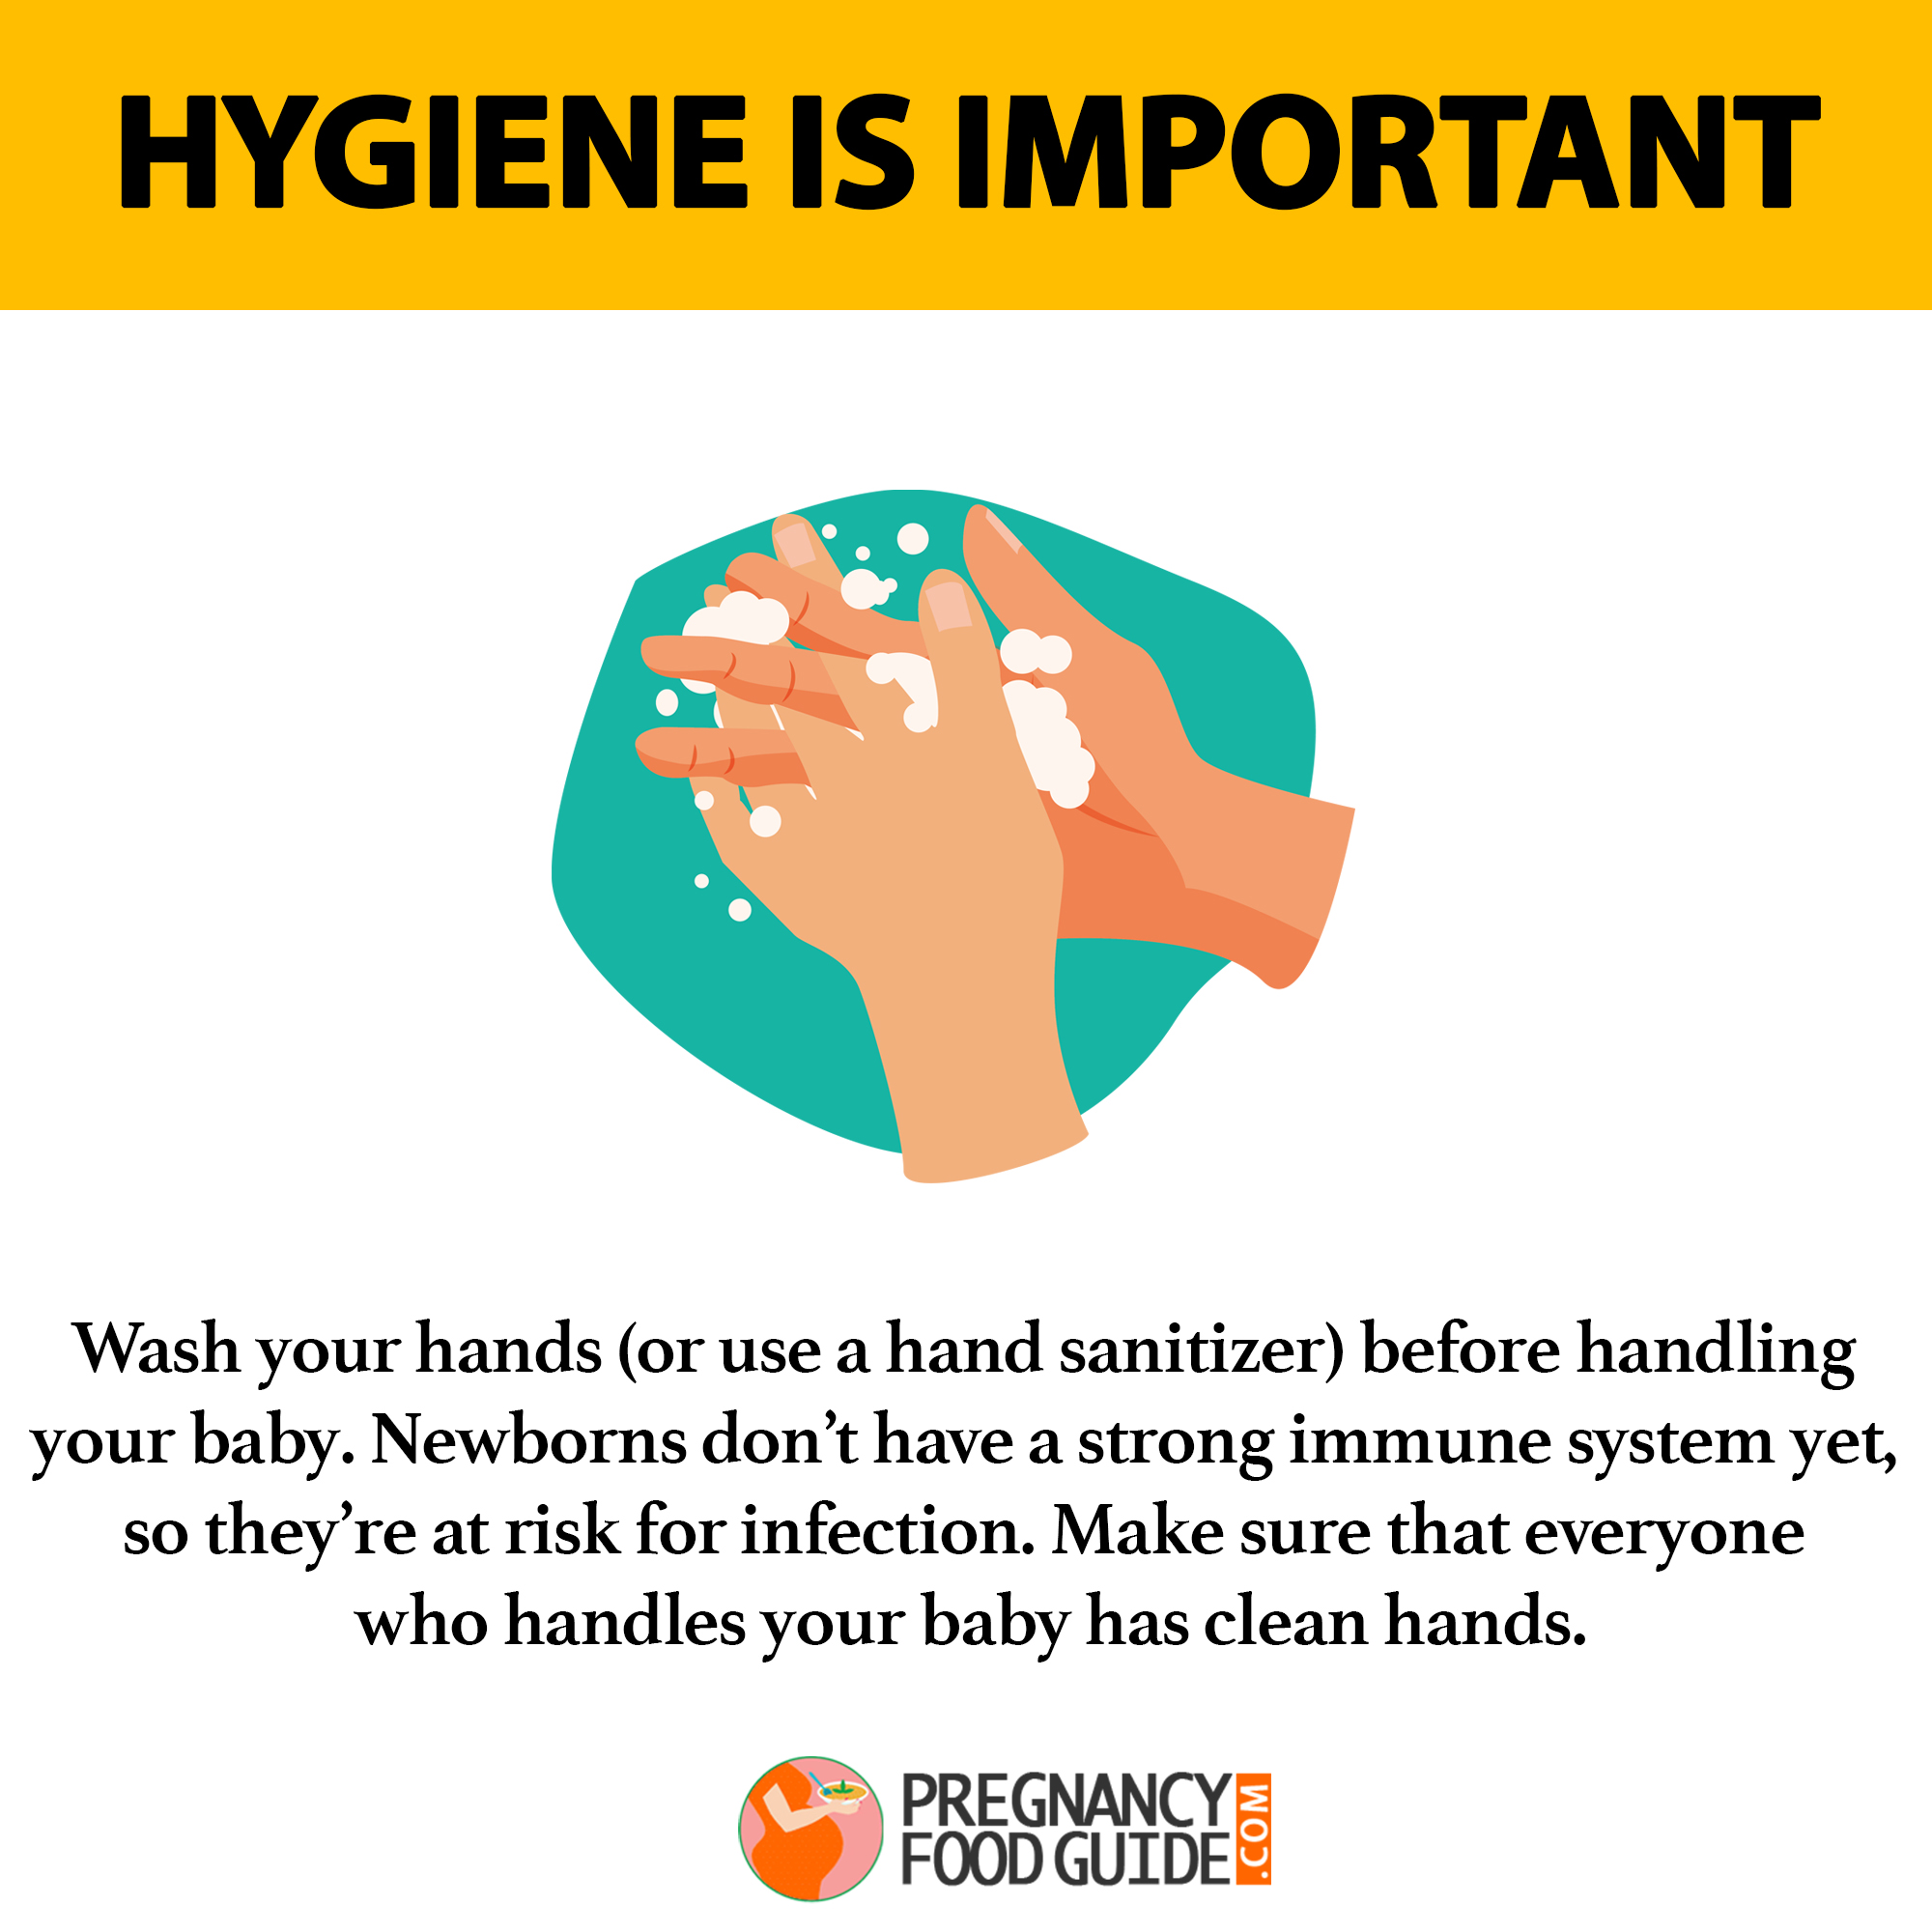 hygiene is important